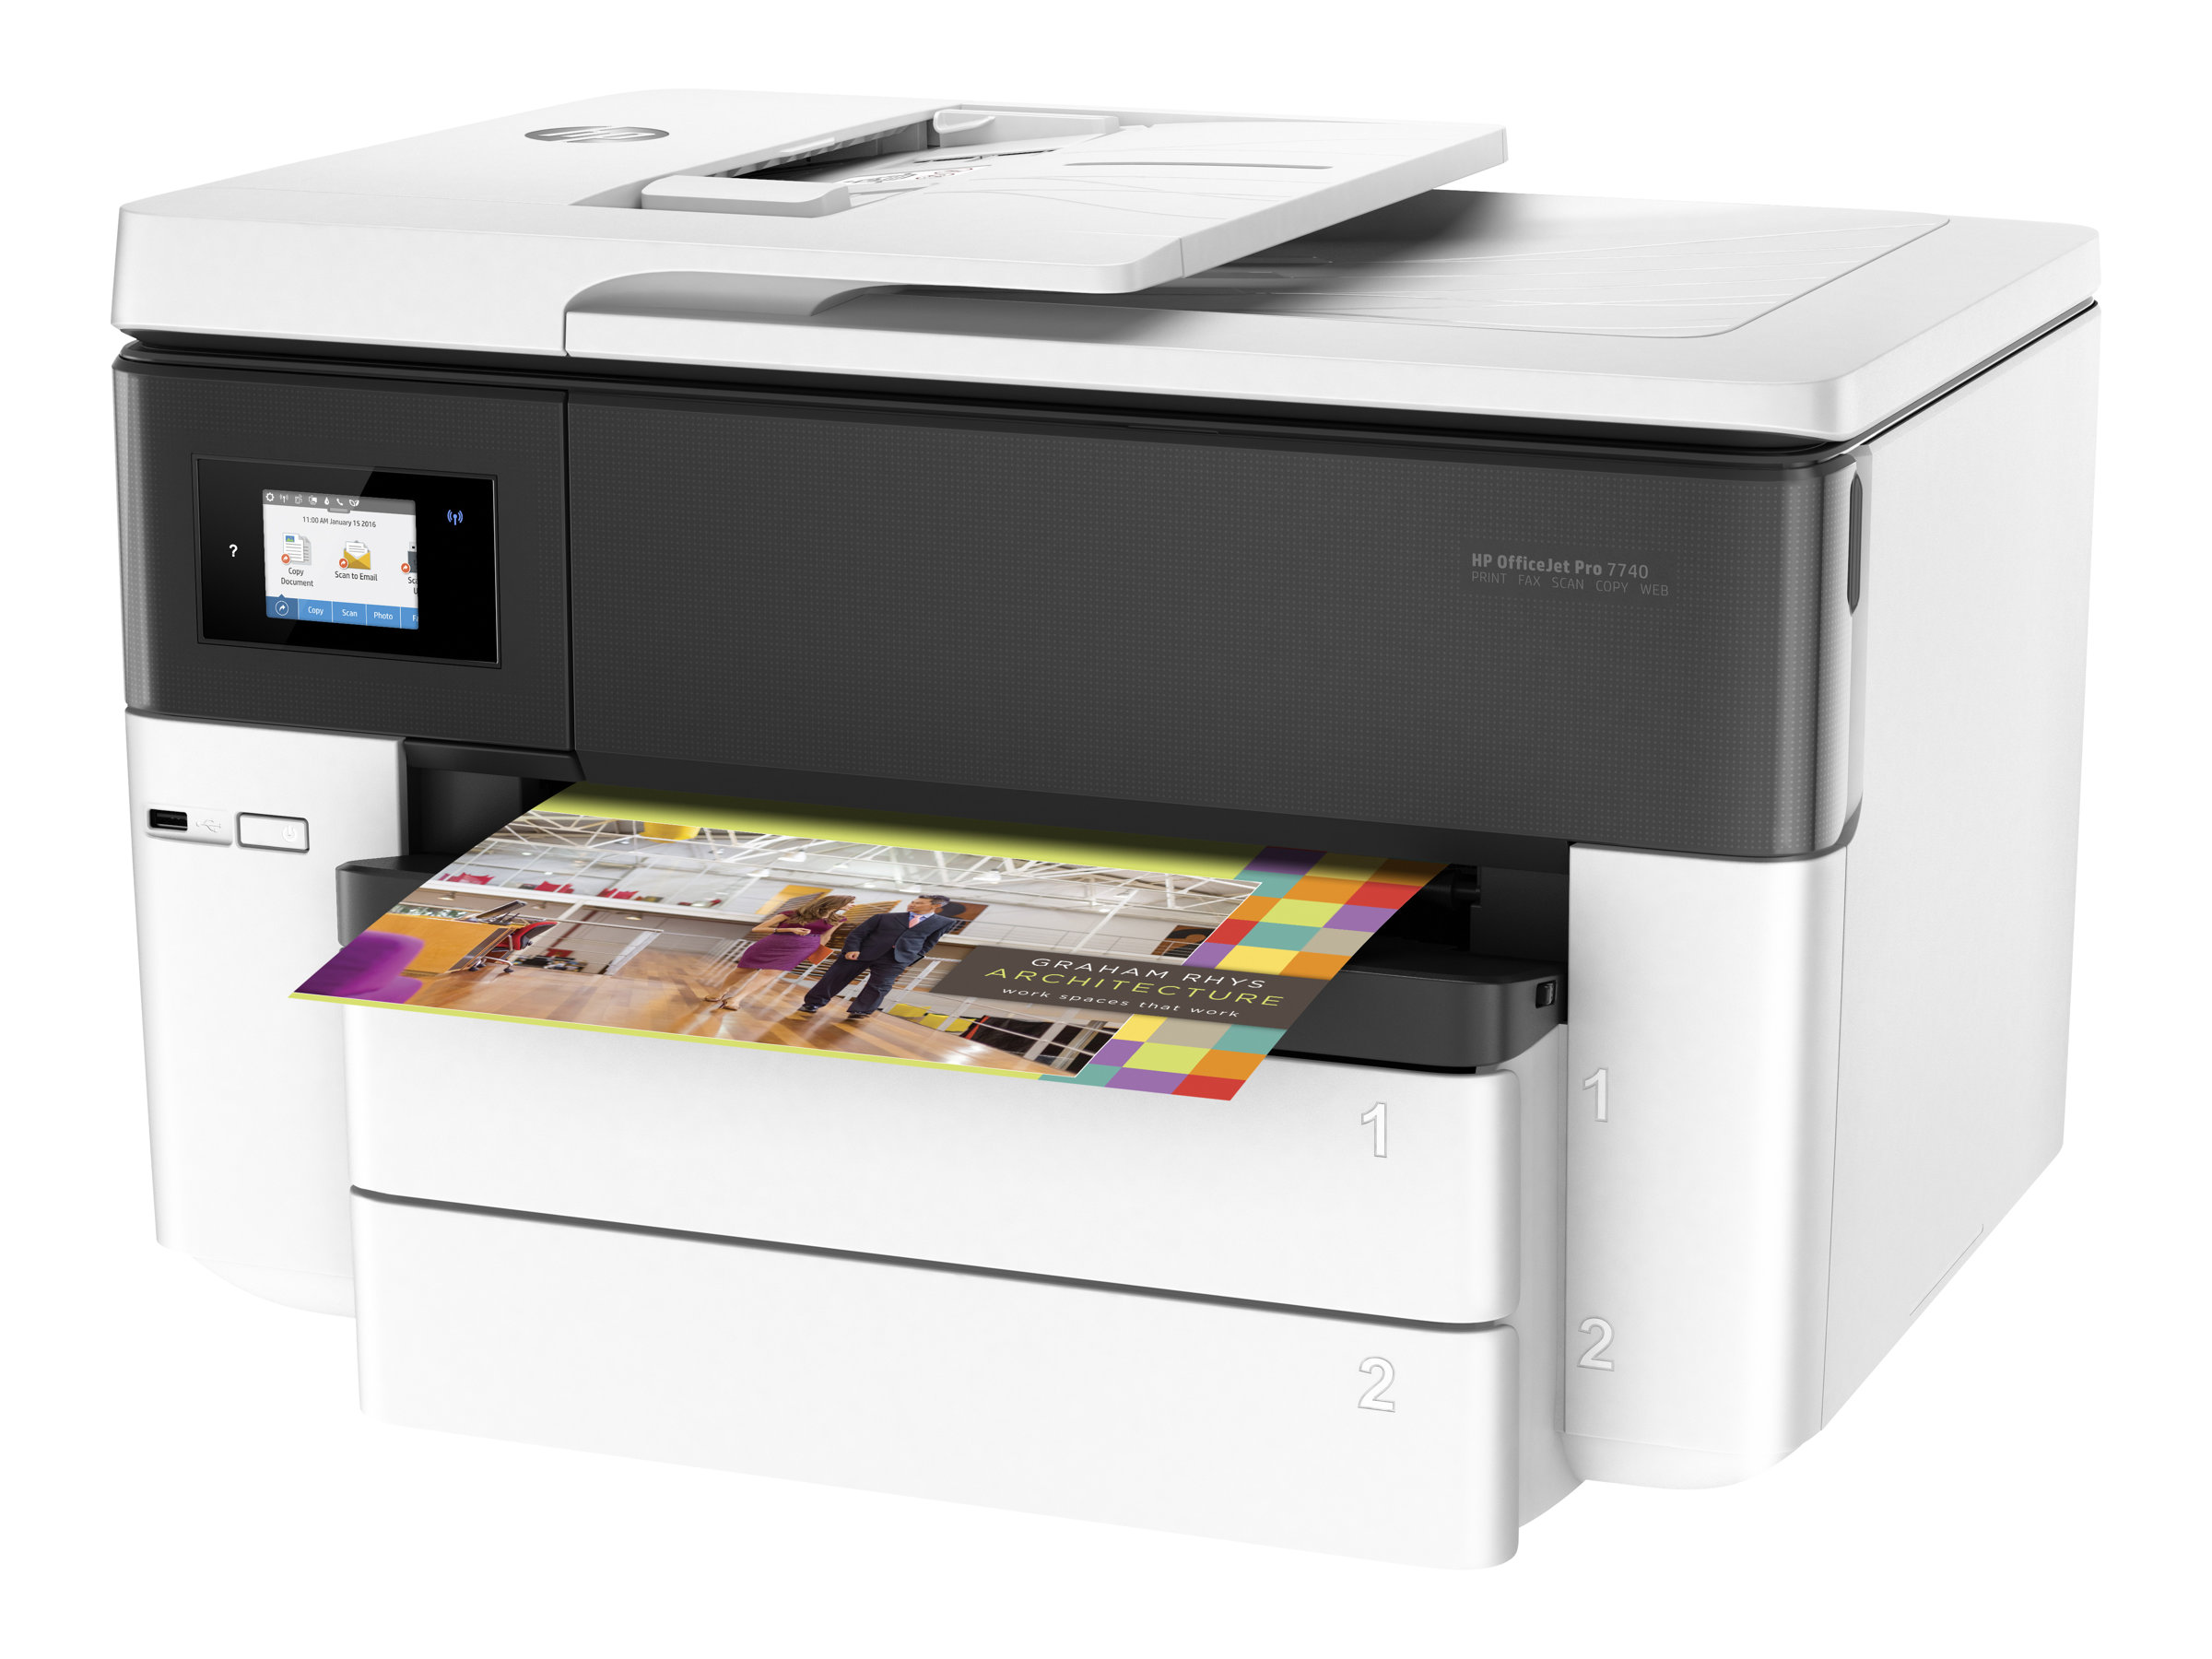 HP Officejet Pro 7740 All-in-One - Multifunktionsdrucker - Farbe - Tintenstrahl - A3/Ledger (297 x 432 mm)